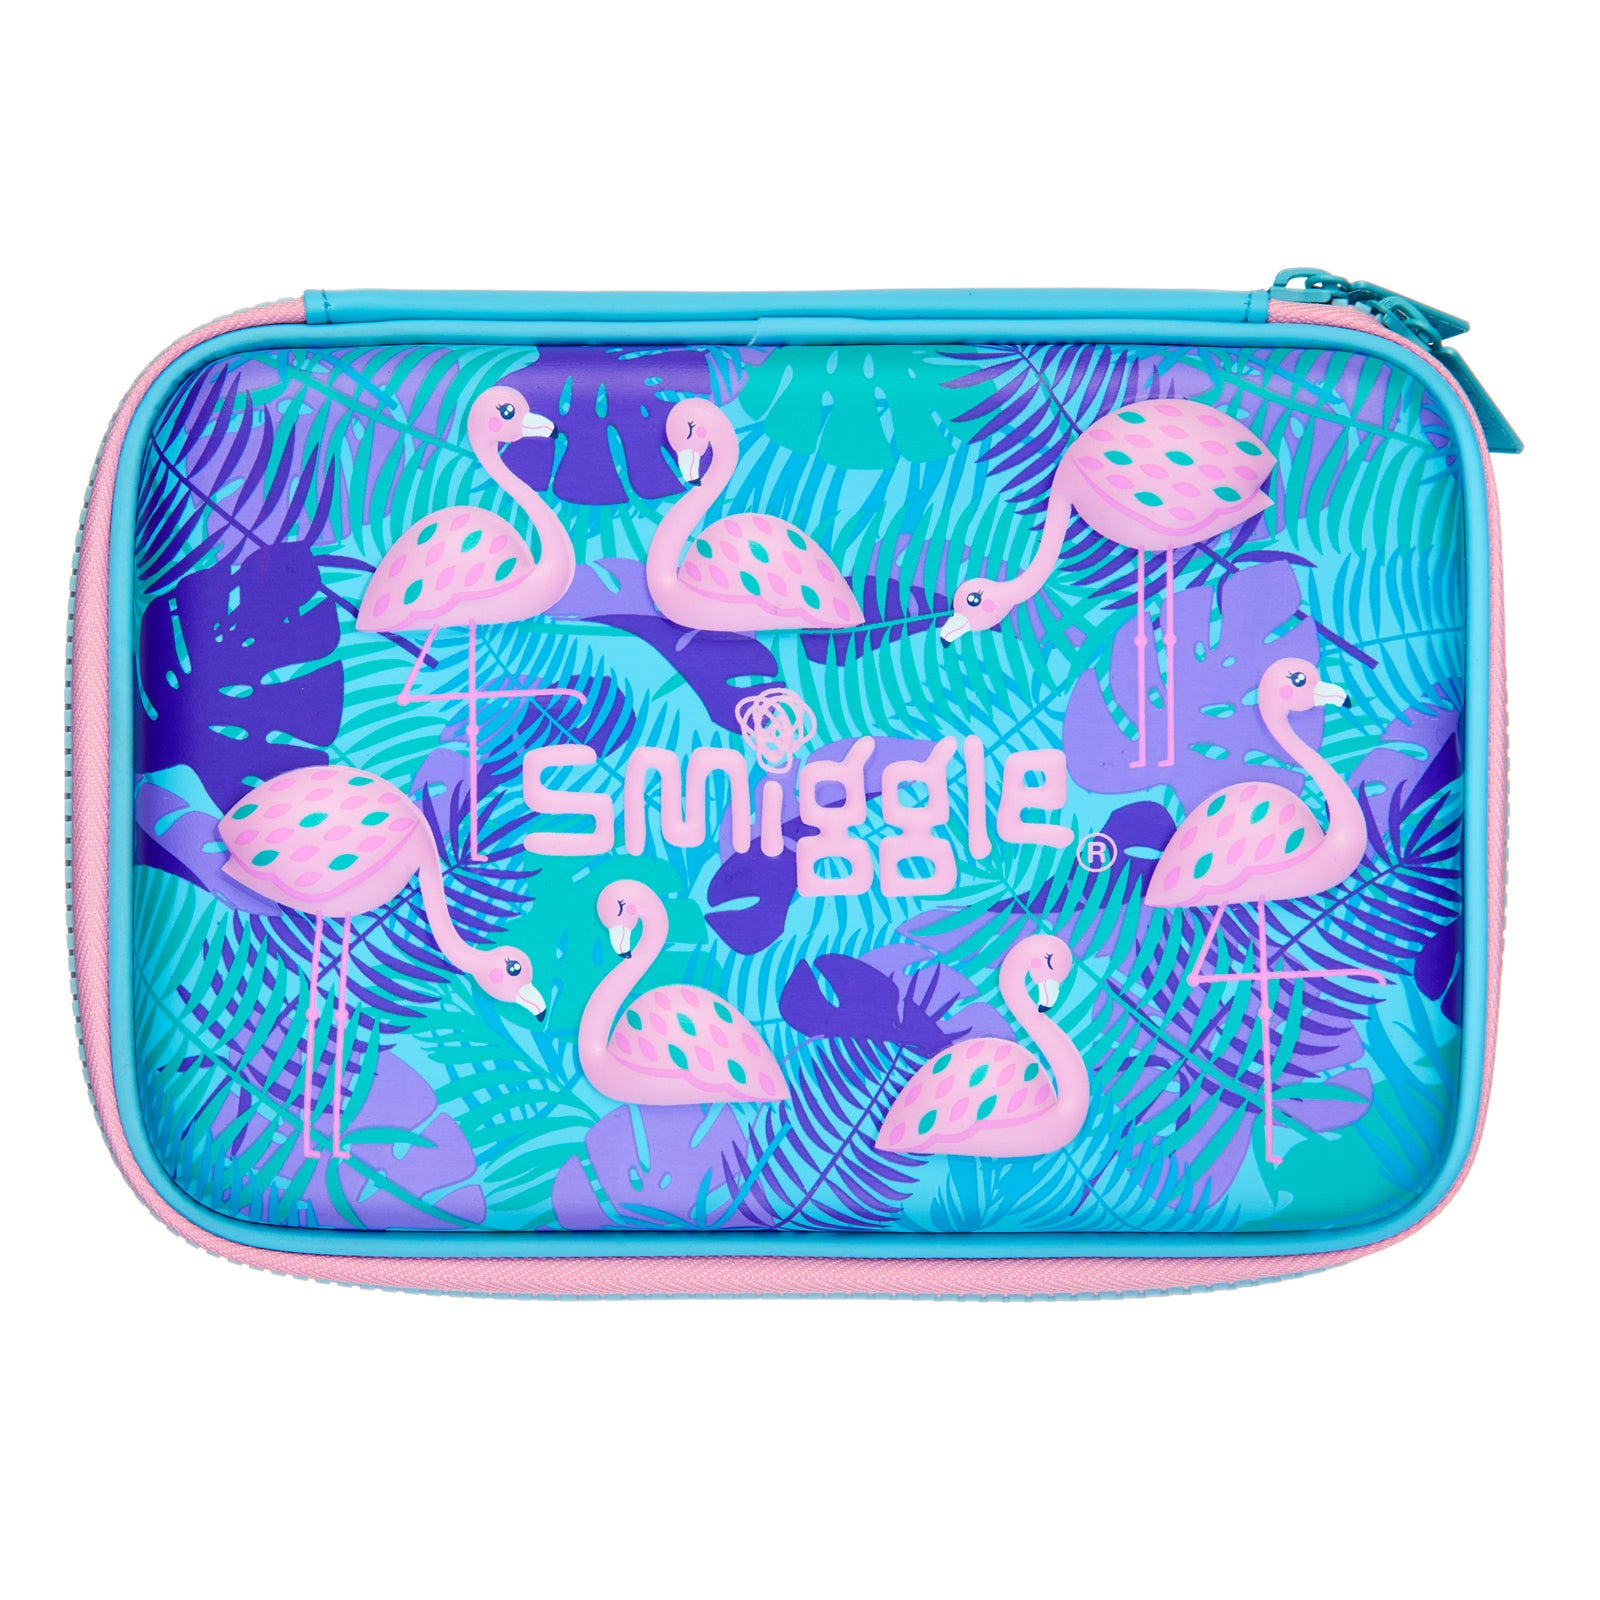 SMIGGLE - HIPPY SMALL HARDTOP PENCIL CASE BLUE - MyVaniteeCase